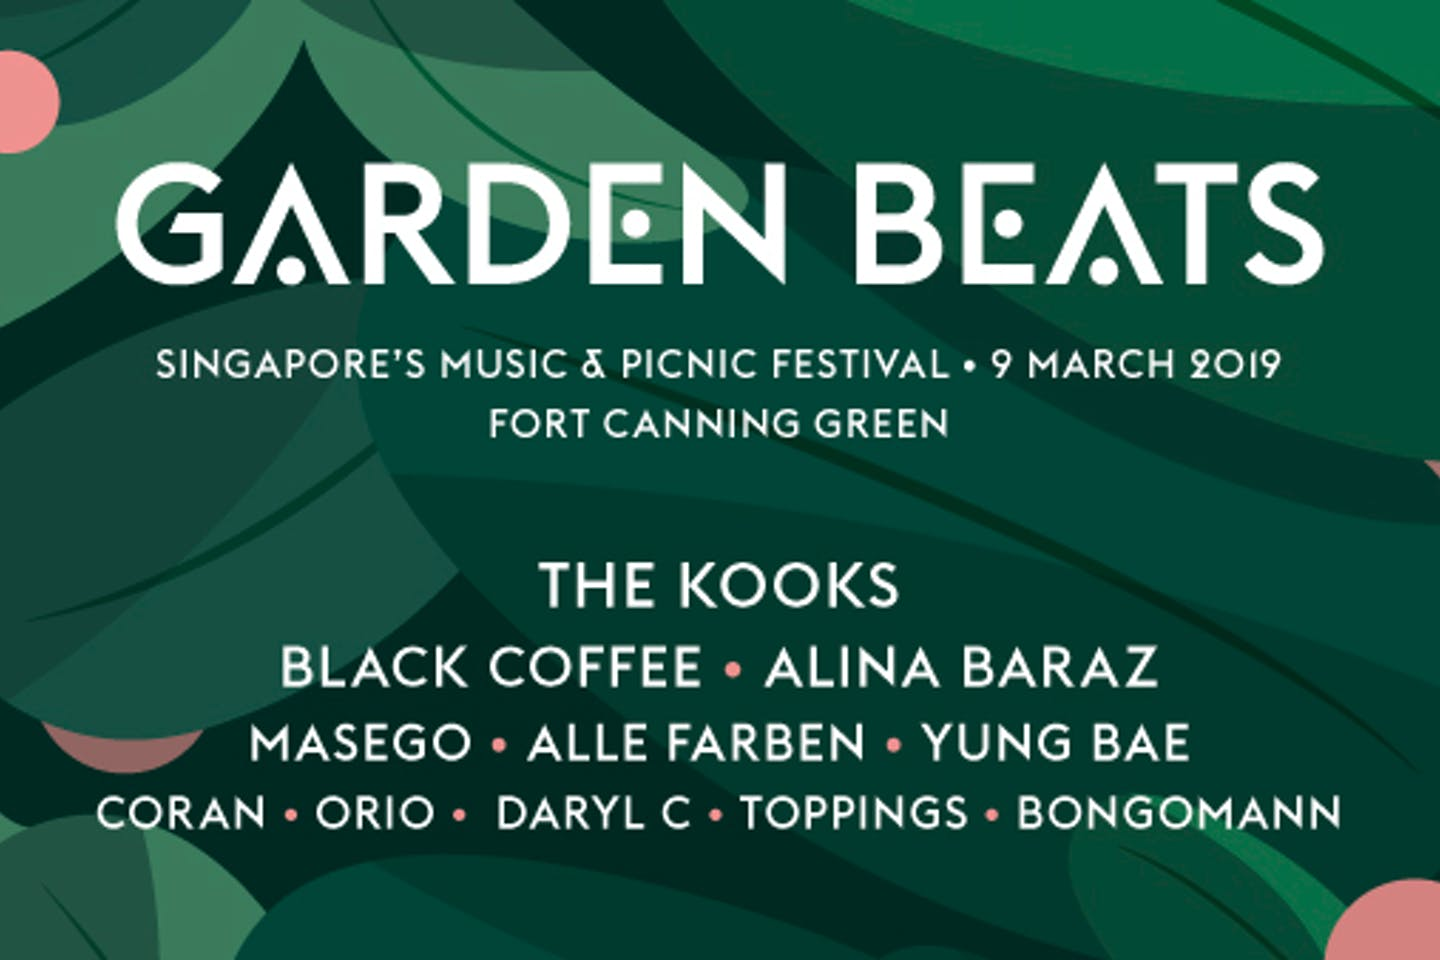 Garden Beats 2019 steps up to become Singapore's first carbon-neutral music fest